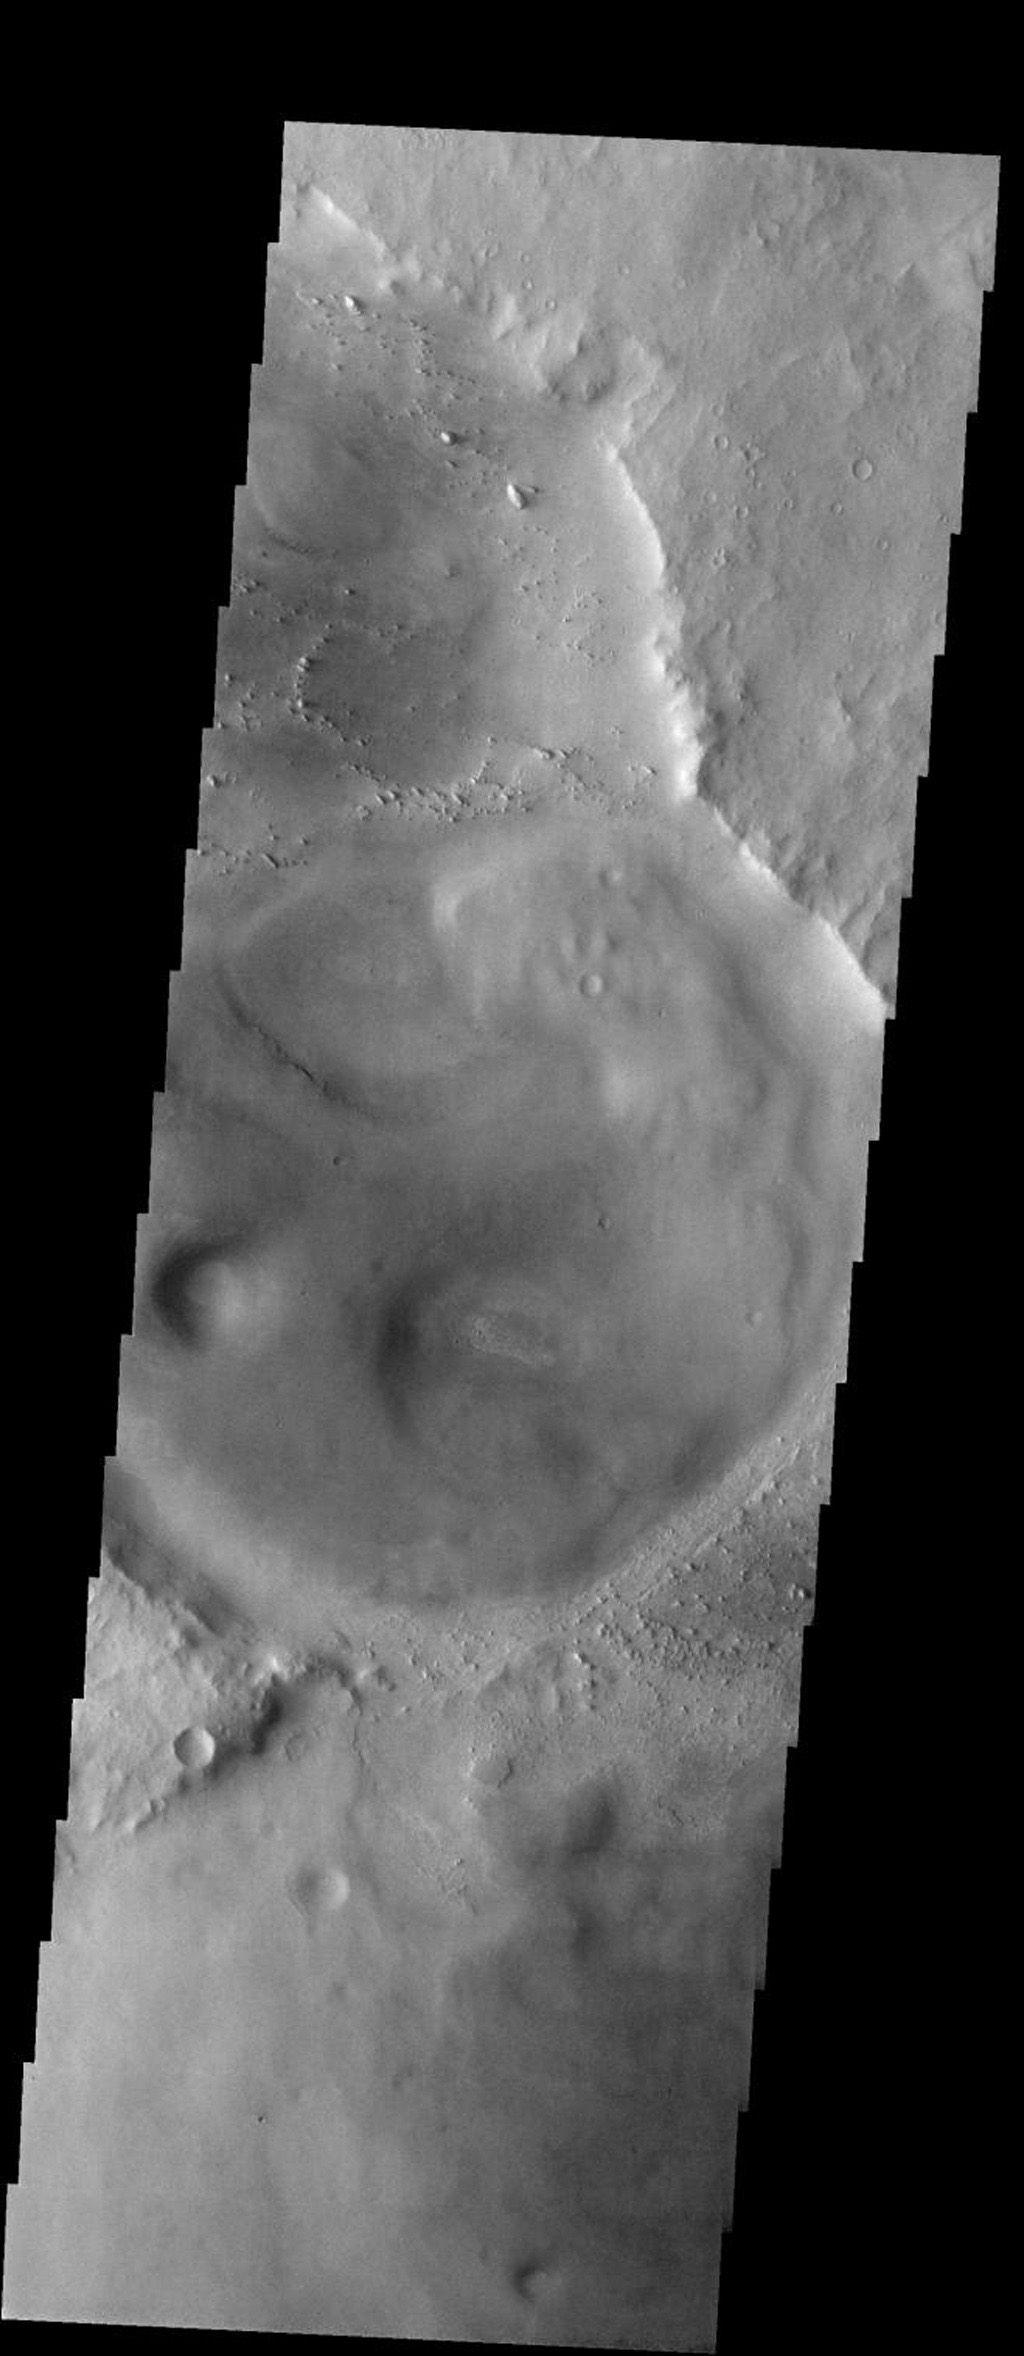 This image from NASA's 2001 Mars Odyssey released on Jan 26, 2004 shows the flat surface of Meridiani Planum on Mars.